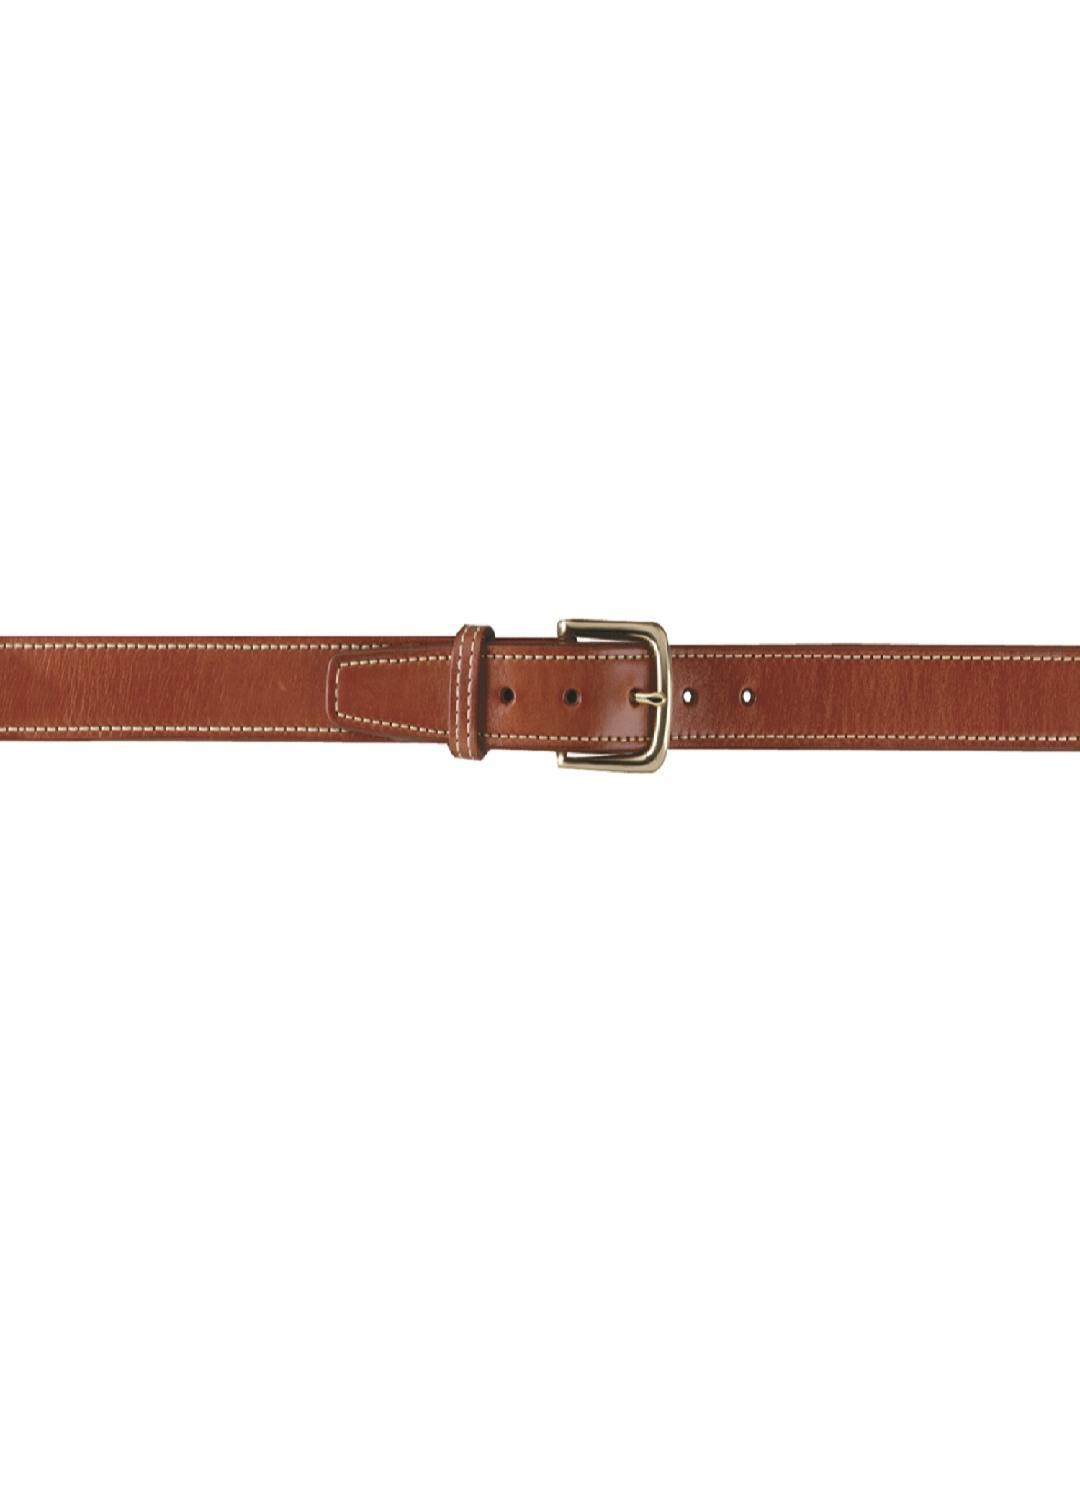 GandG Chestnut Brown 1 1-2 inch Shooters Belt size 28